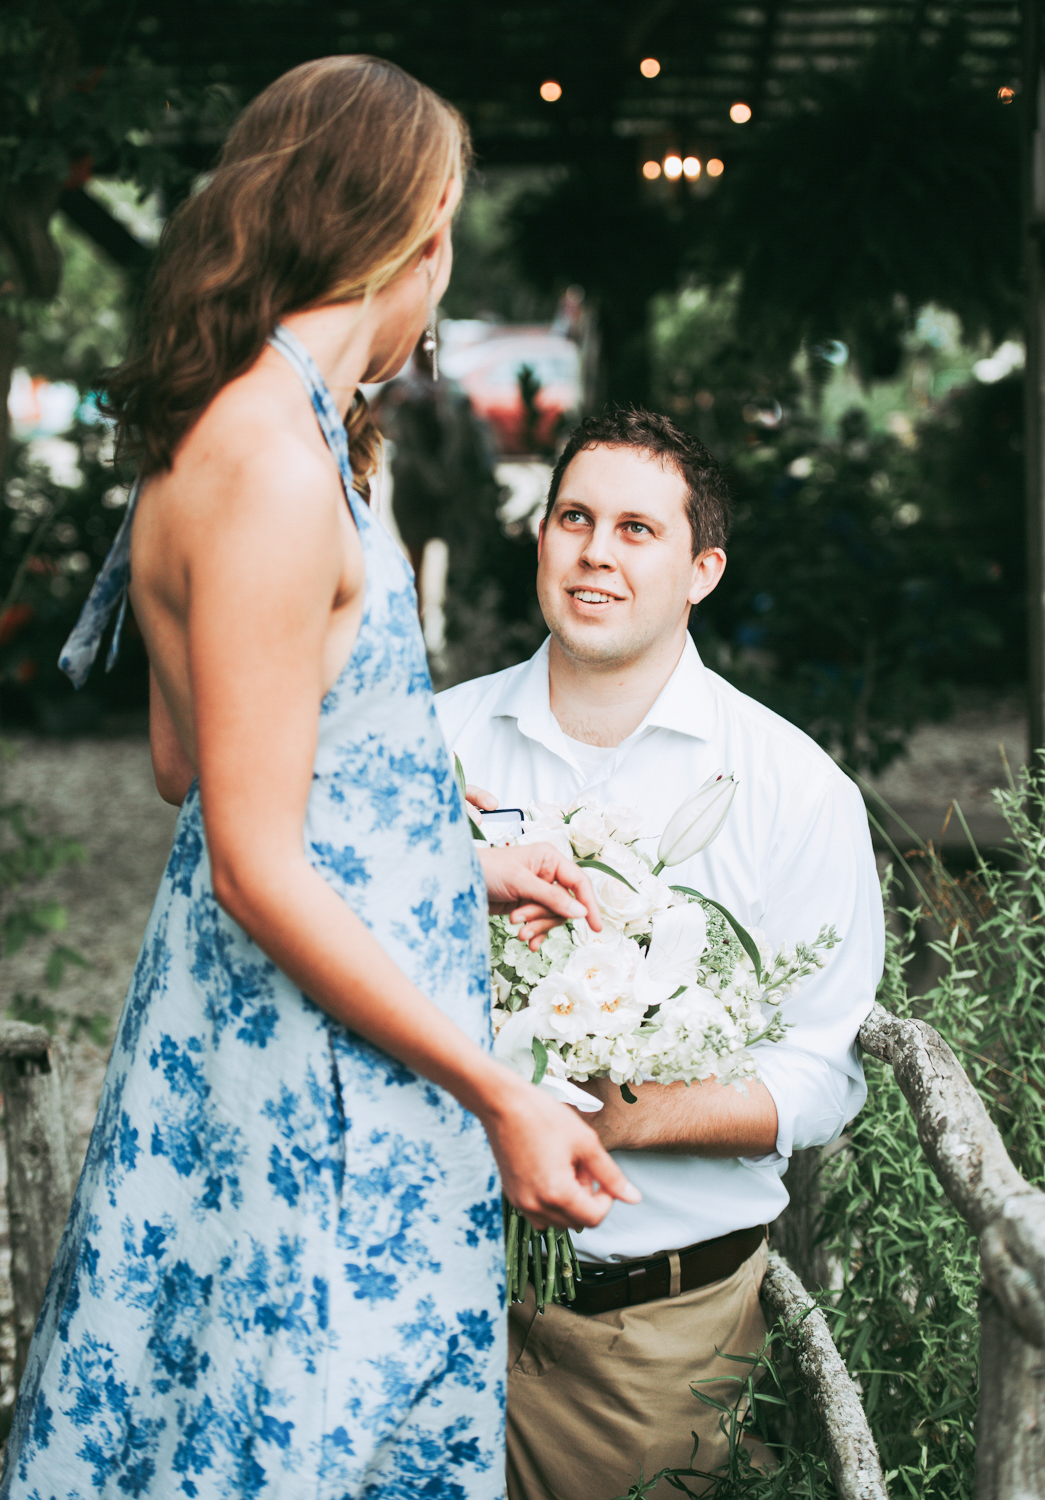 hilary_brian_engagement_marry_me-3596.jpg